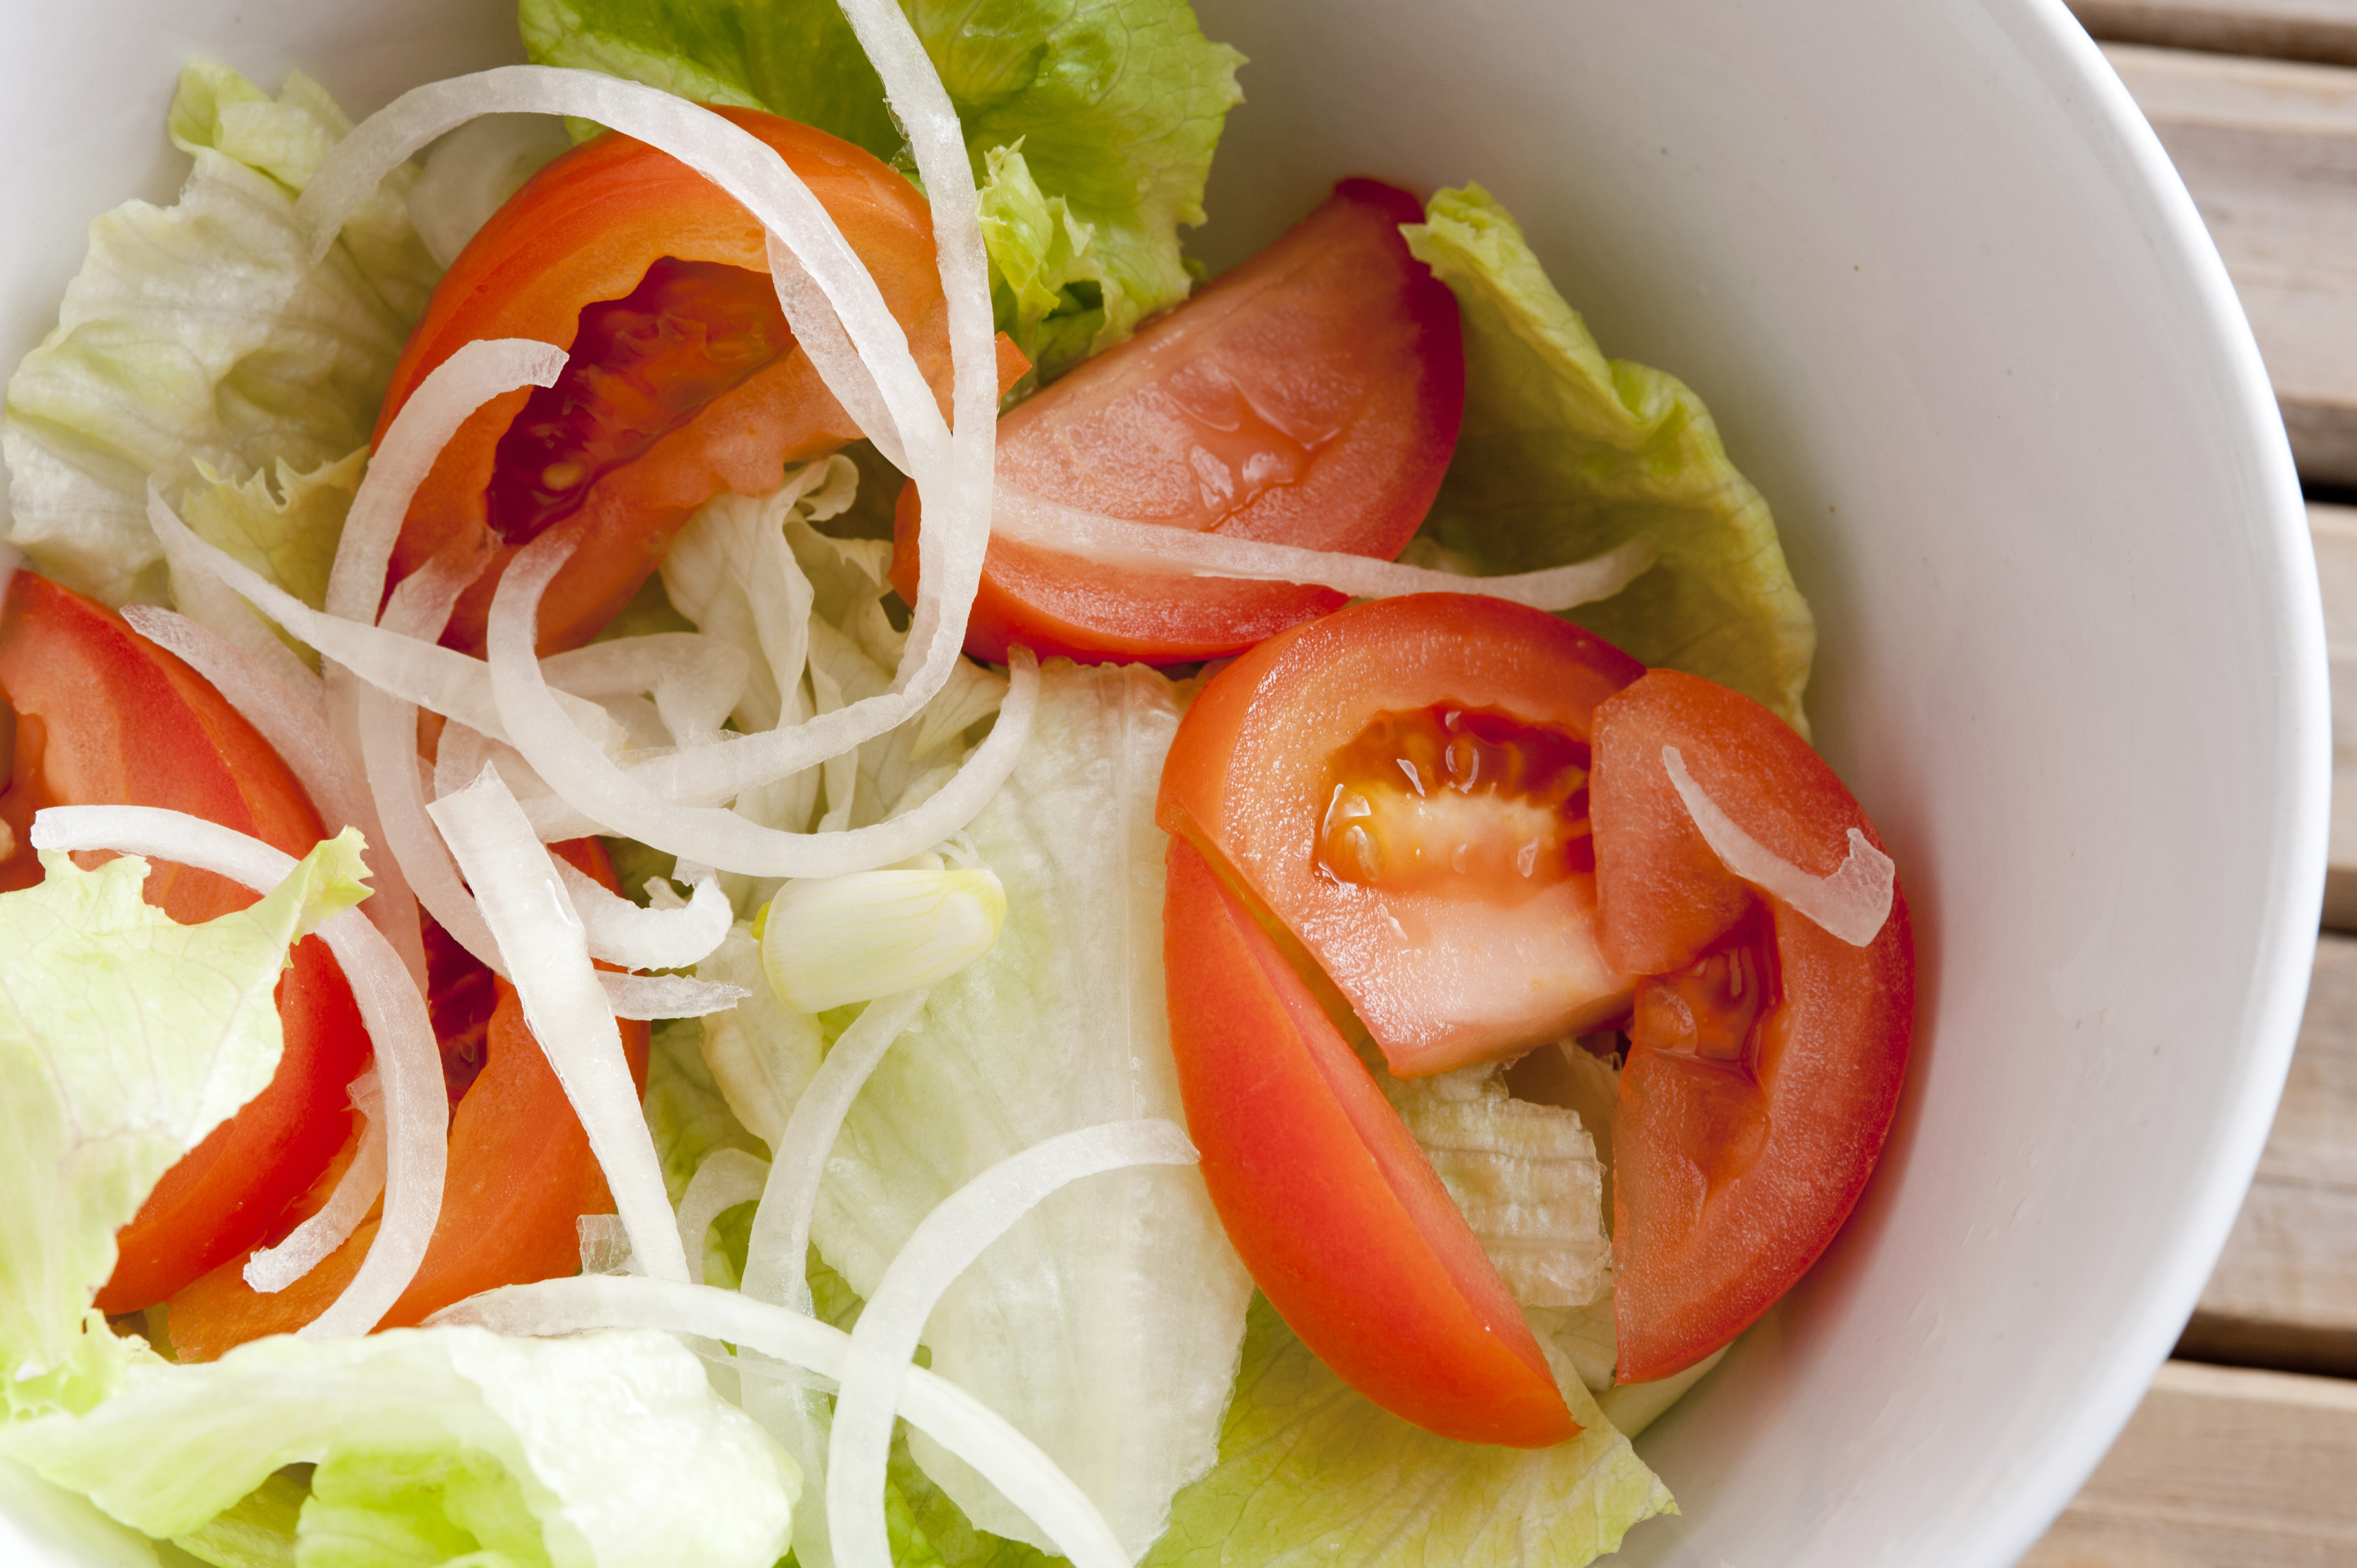 Close up Fresh Vegetable Salad on White Bowl with Cabbage, Lettuce and Tomatoes